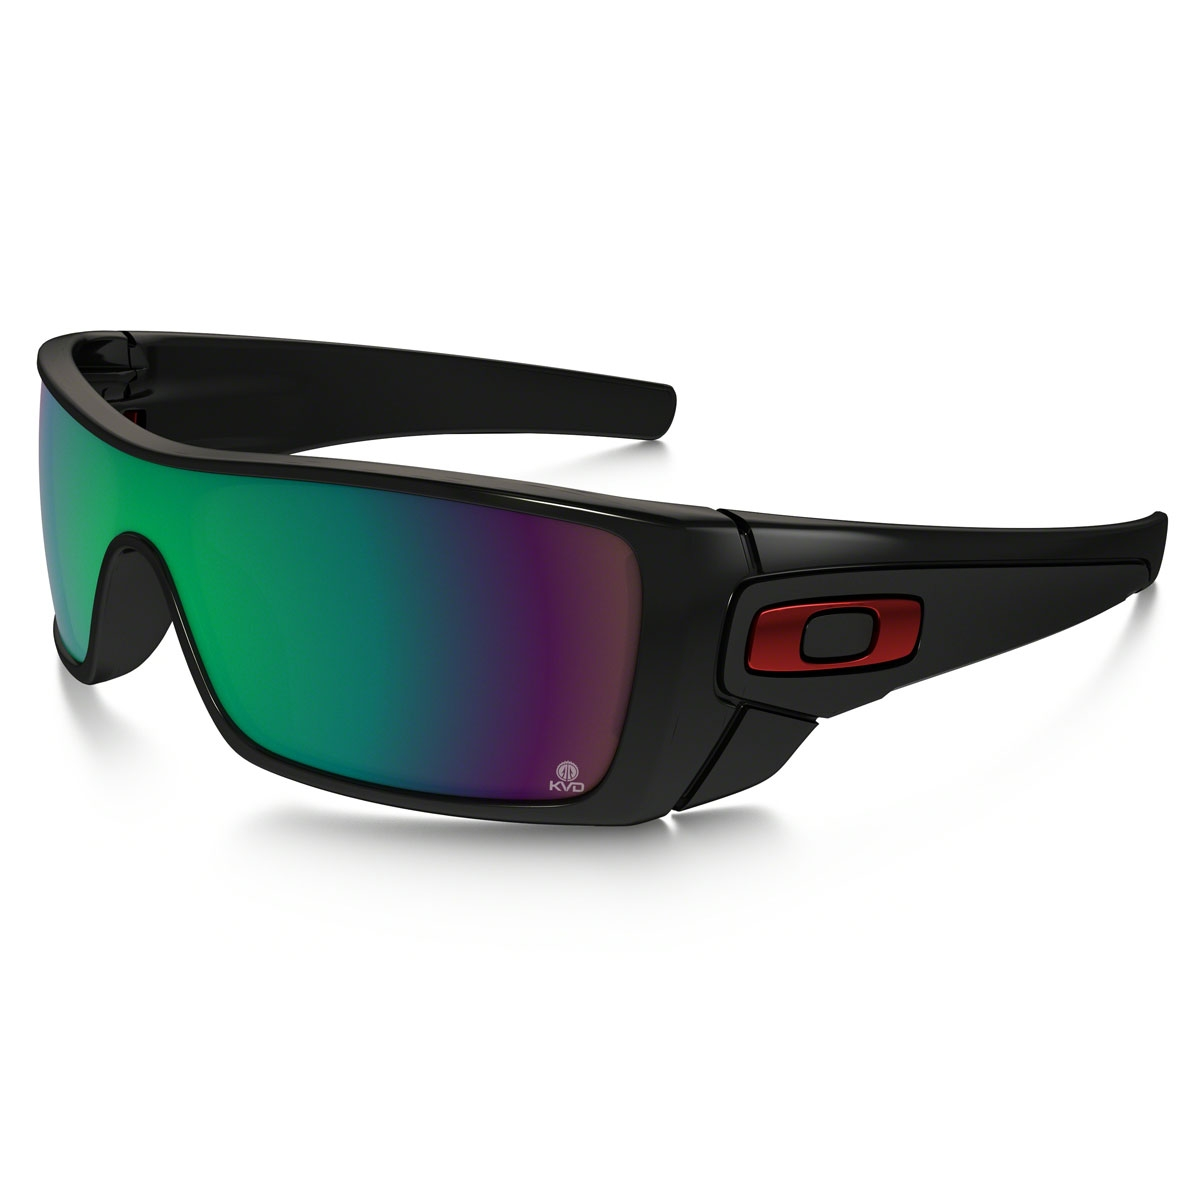 80ea856ebad Image of Oakley KVD Batwolf Sunglasses - Polished Black   Prizm Shallow  Water Polarized